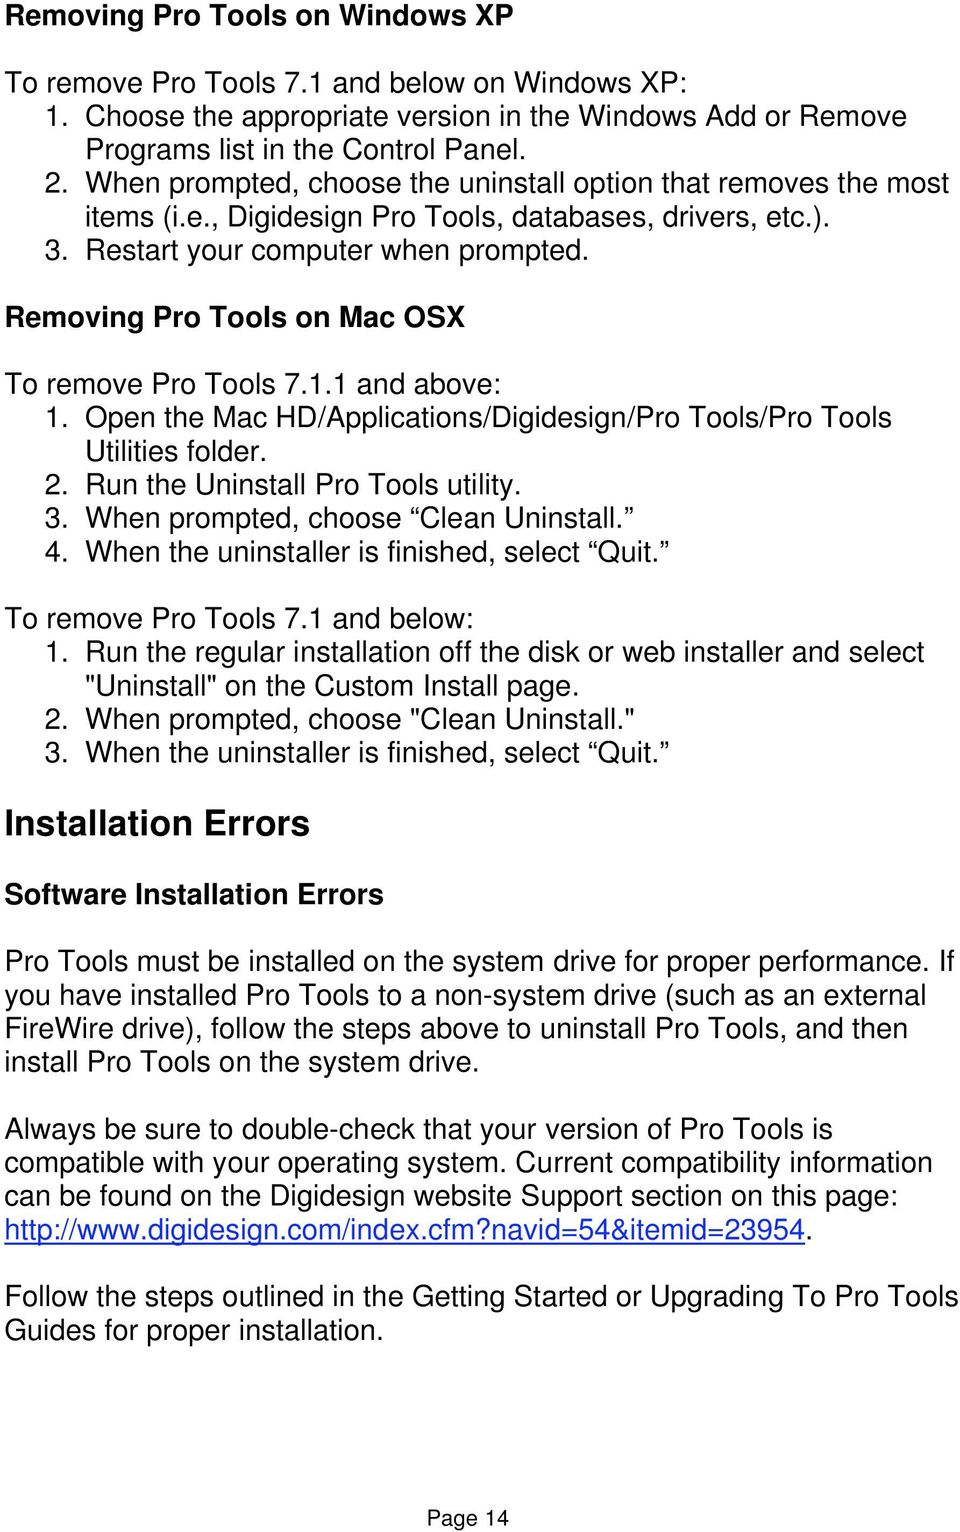 Digidesign Support FAQ  Pro Tools Troubleshooting Guide - PDF